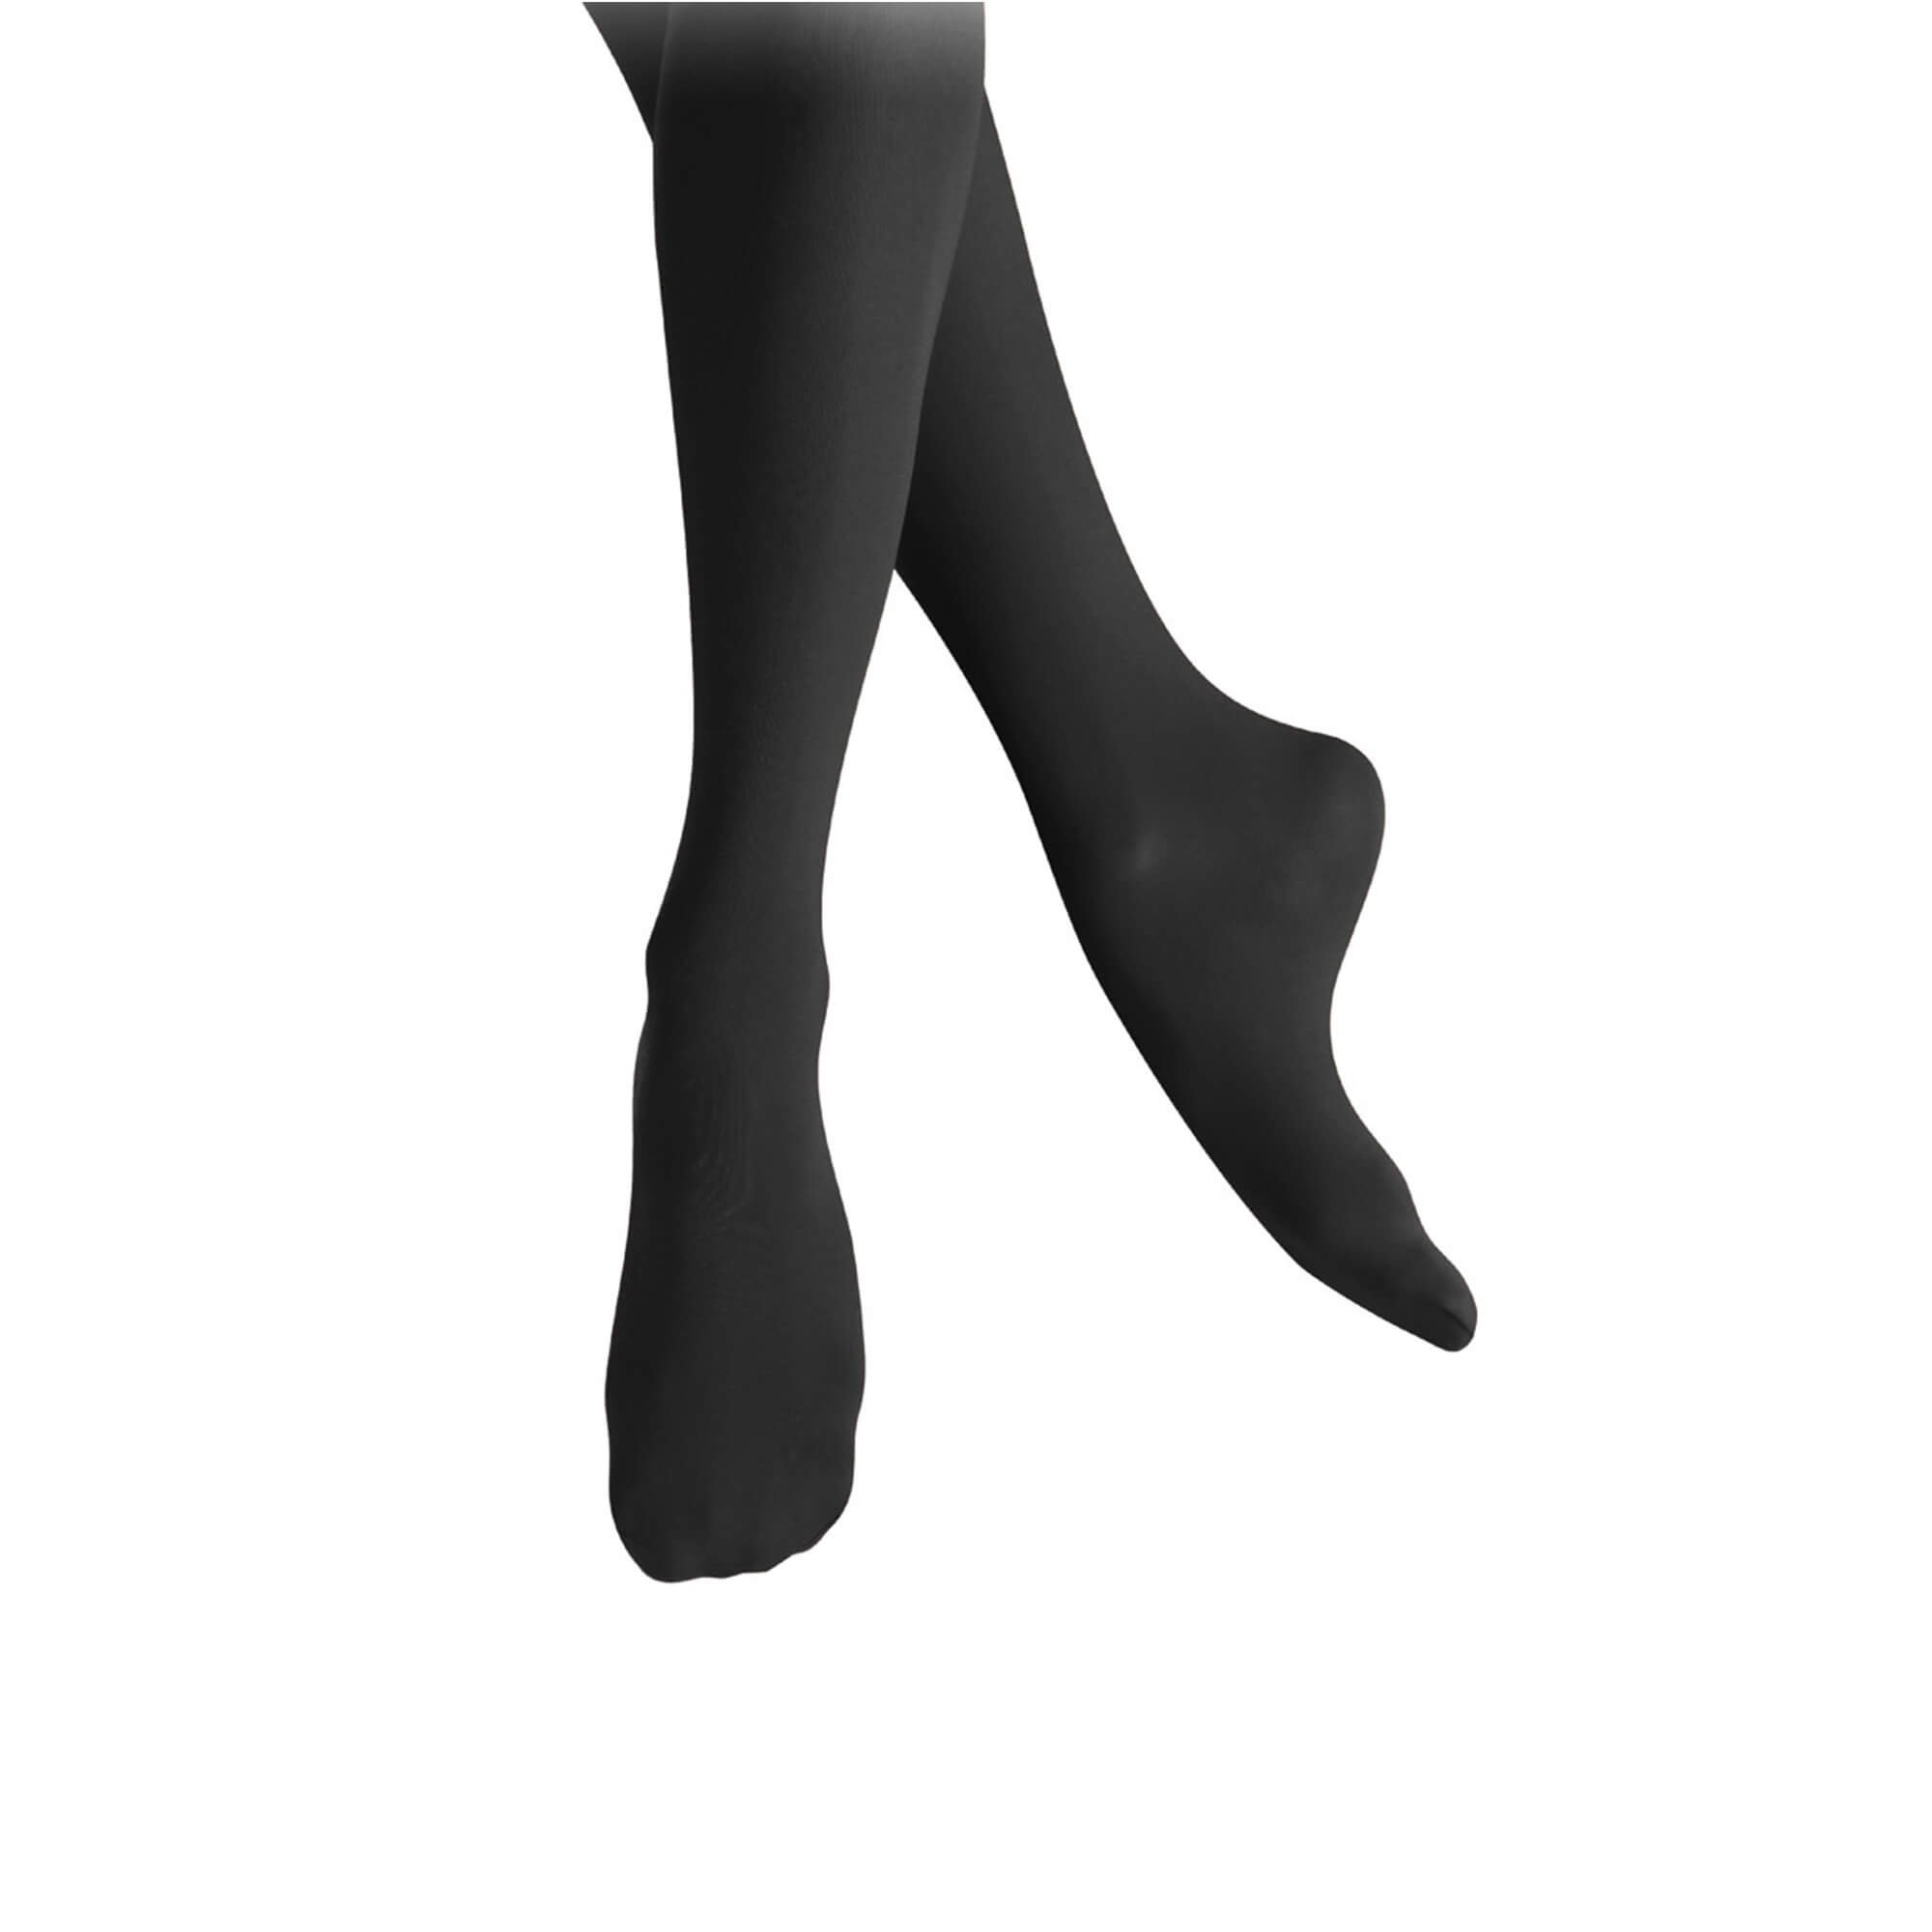 Leo's Children's Firm Fit Convertible Supplex Tights